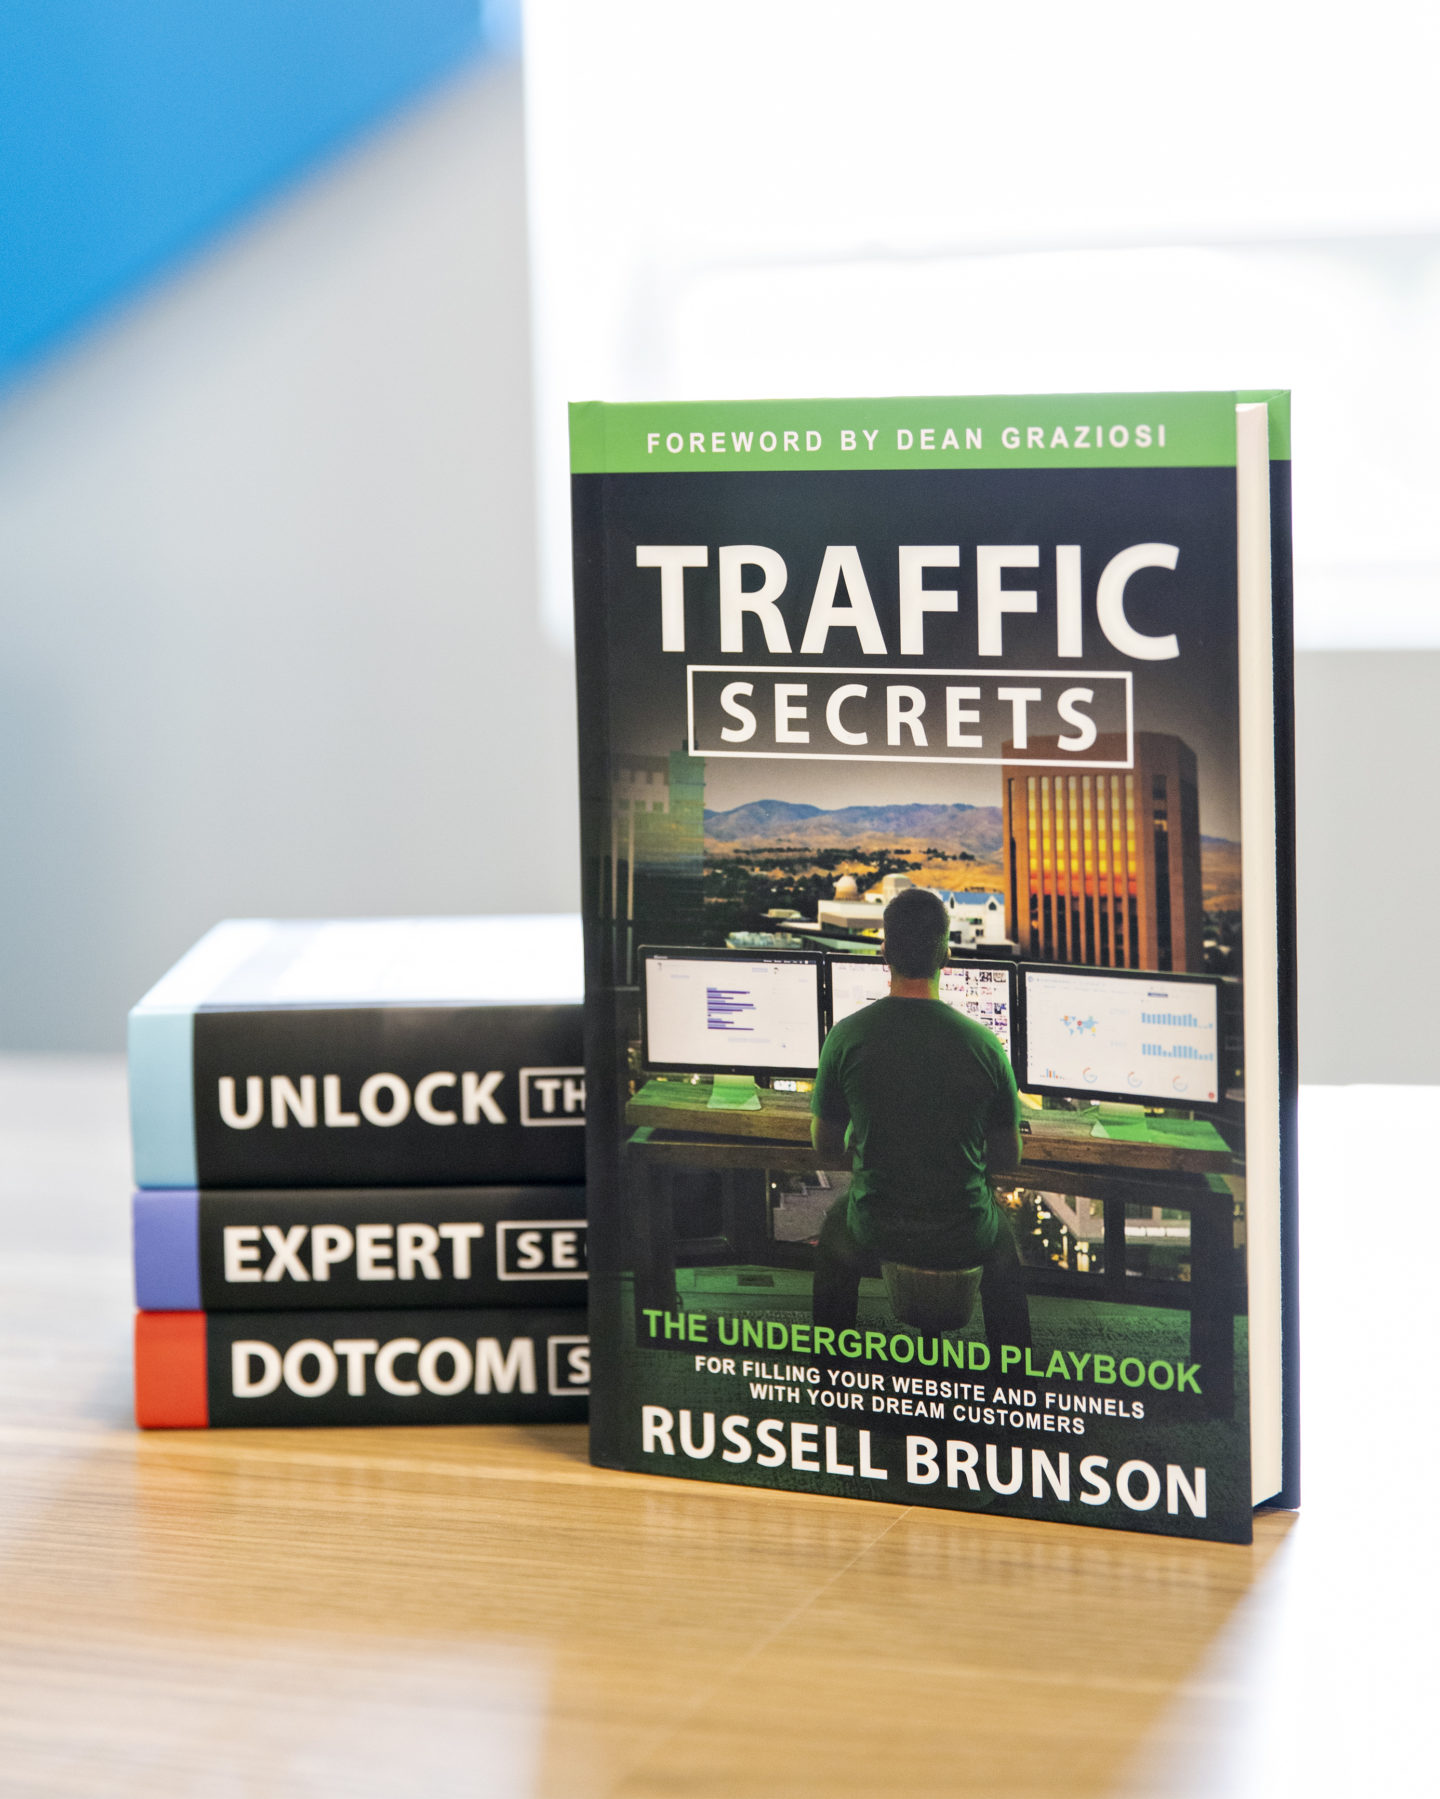 What I Learned from Traffic Secrets